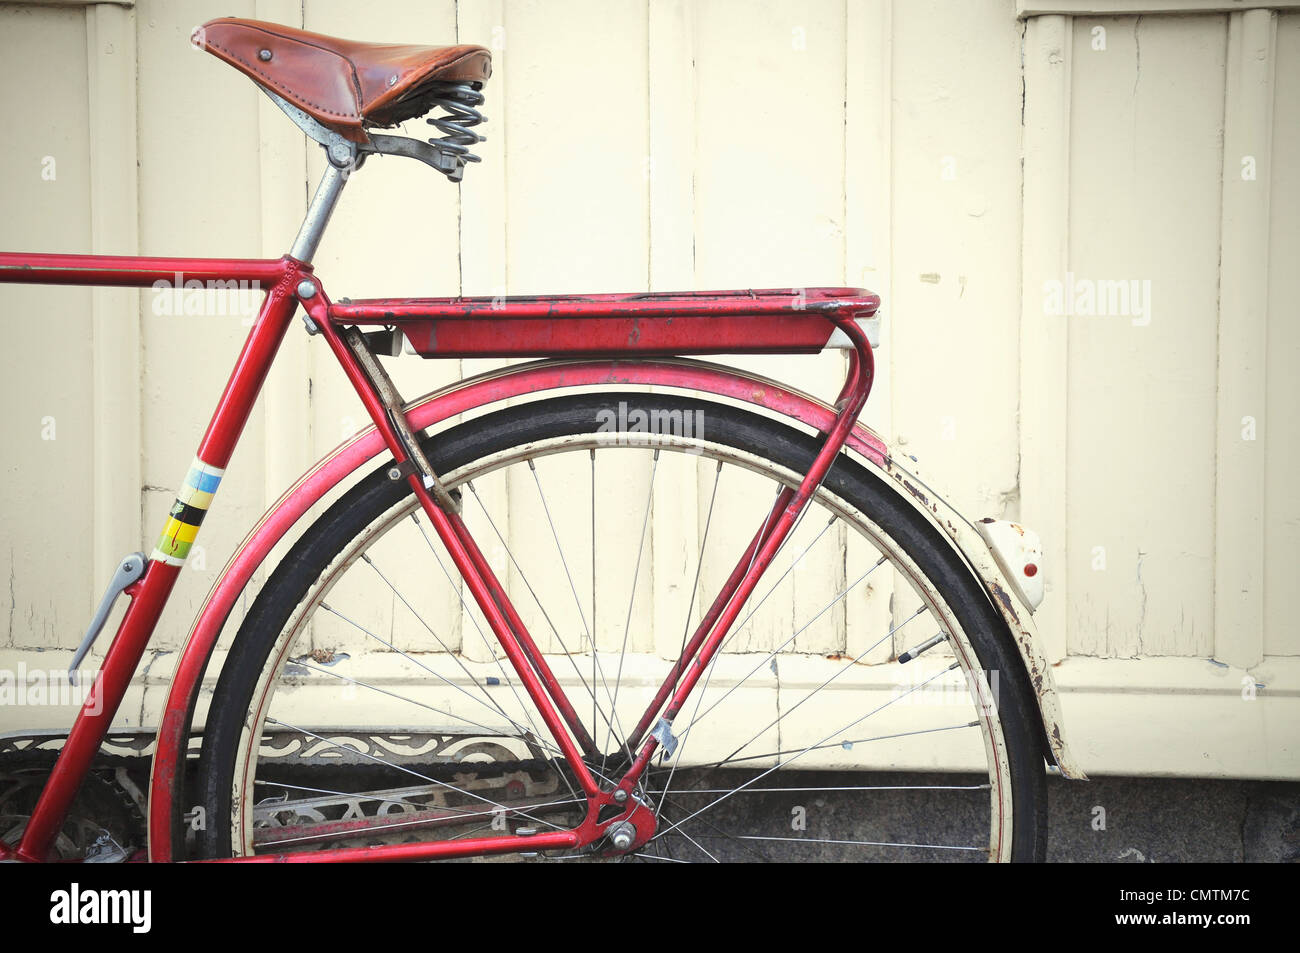 Close-up of red bicycle - Stock Image